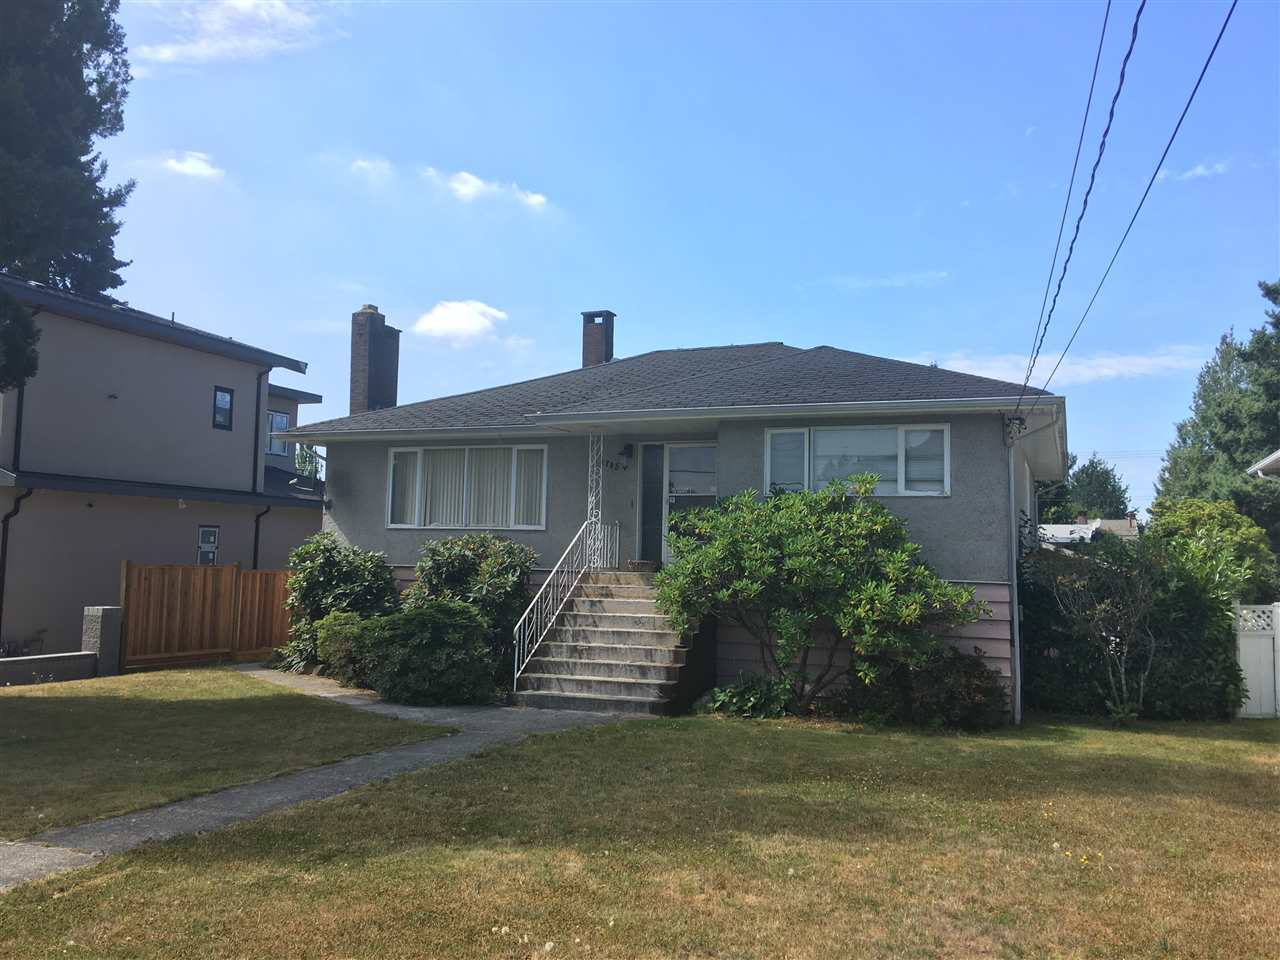 A 55'X122 lot with over 2100s.f. great starter home (or building lot) in desirable Sperling-Duthie area, a short drive to shops and restaurants on Hastings, and an easy commute to Downtown or SFU via transit. For investors, the basement is fully finished, with lots of storage, and suite potential. Lane access at the back. The property is zoned R4 and is close to Lochdale Community Elementary School, Burnaby North Secondary School and SFU. Outdoor enthusiasts will appreciate Burnaby Mountain and the Trans Canada trail, as well as the dynamic Kensington Park, with outdoor pool and Rec. Centre.